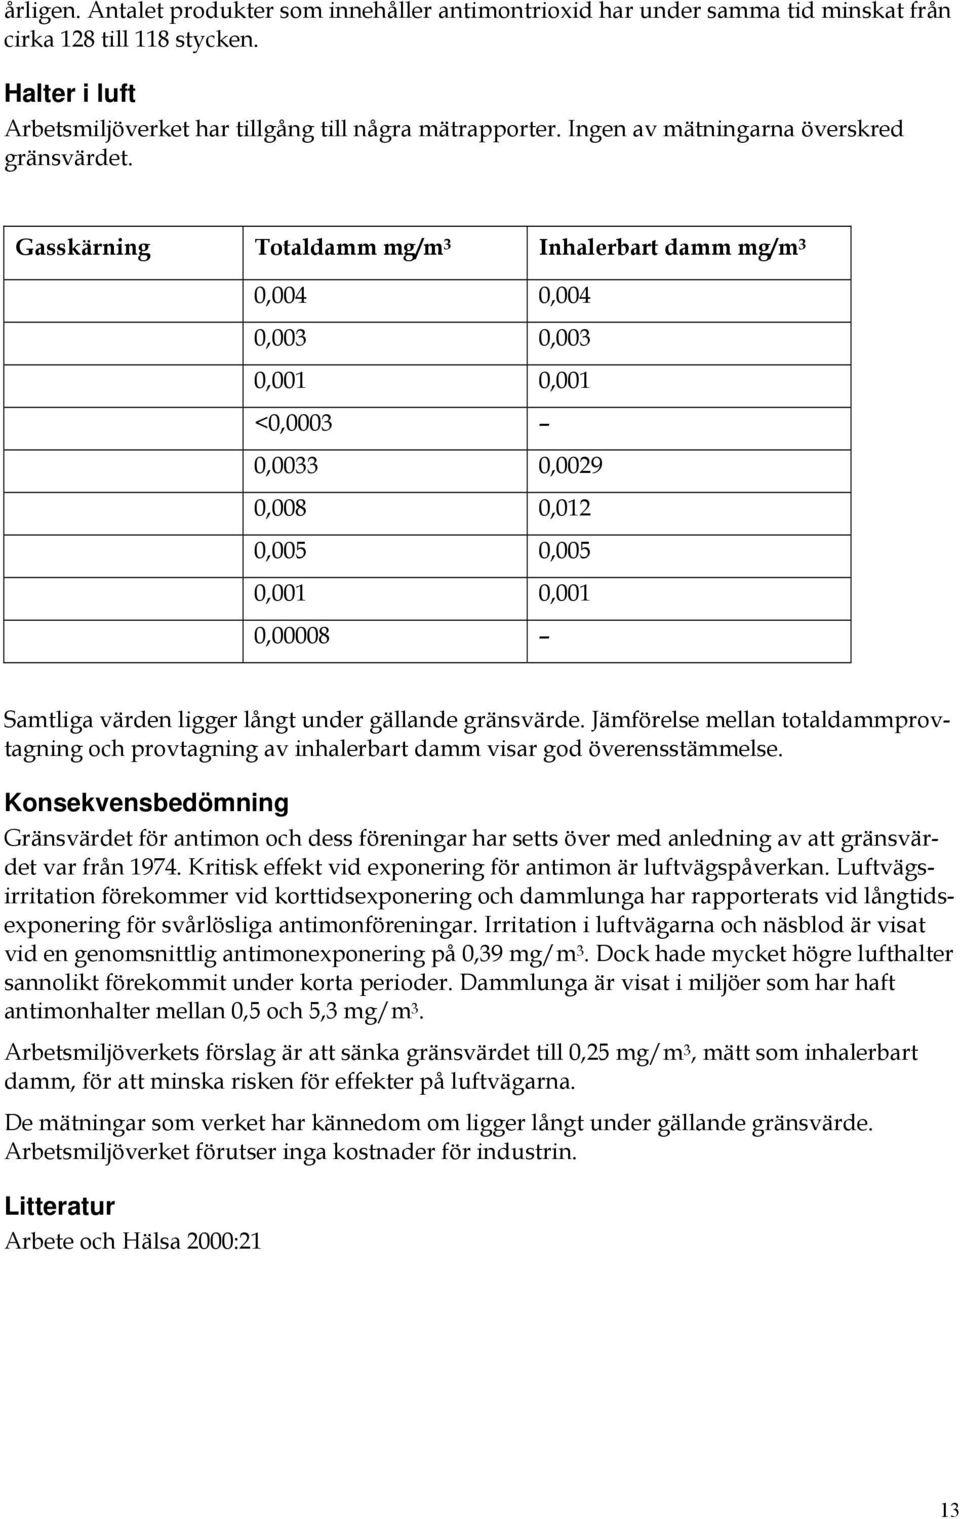 Gasskärning Totaldamm mg/m 3 Inhalerbart damm mg/m 3 0,004 0,004 0,003 0,003 0,001 0,001 <0,0003 0,0033 0,0029 0,008 0,012 0,005 0,005 0,001 0,001 0,00008 Samtliga värden ligger långt under gällande